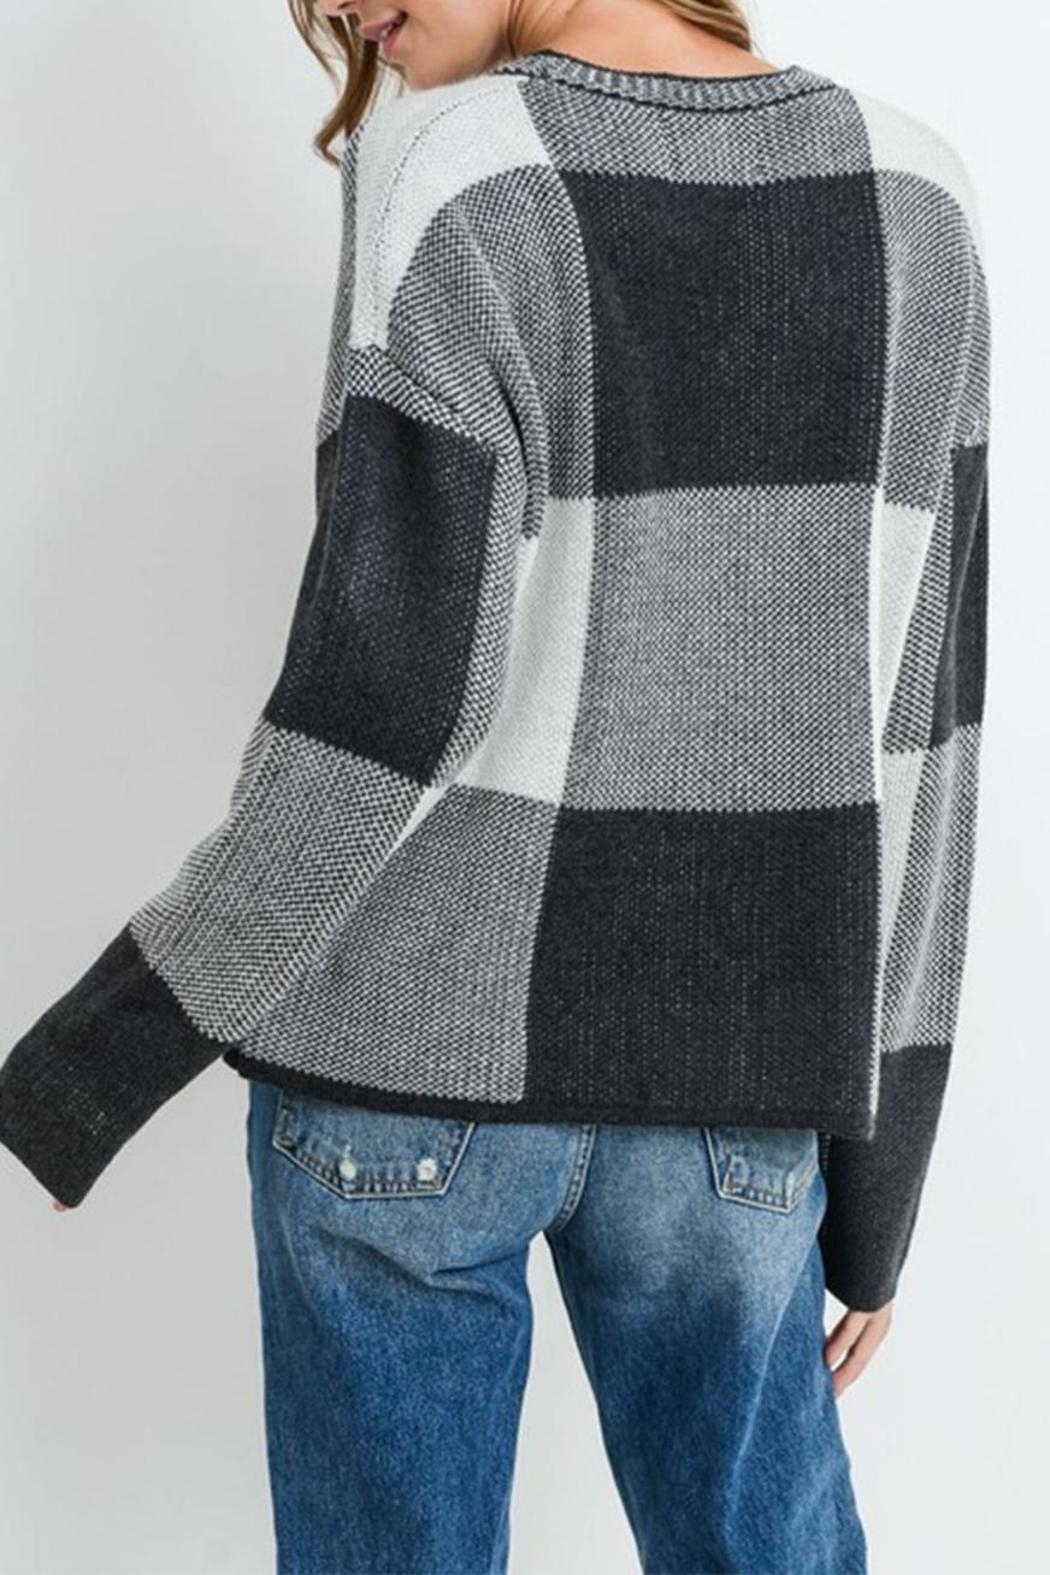 Paper Crane Grey Checkered Sweater - Front Full Image